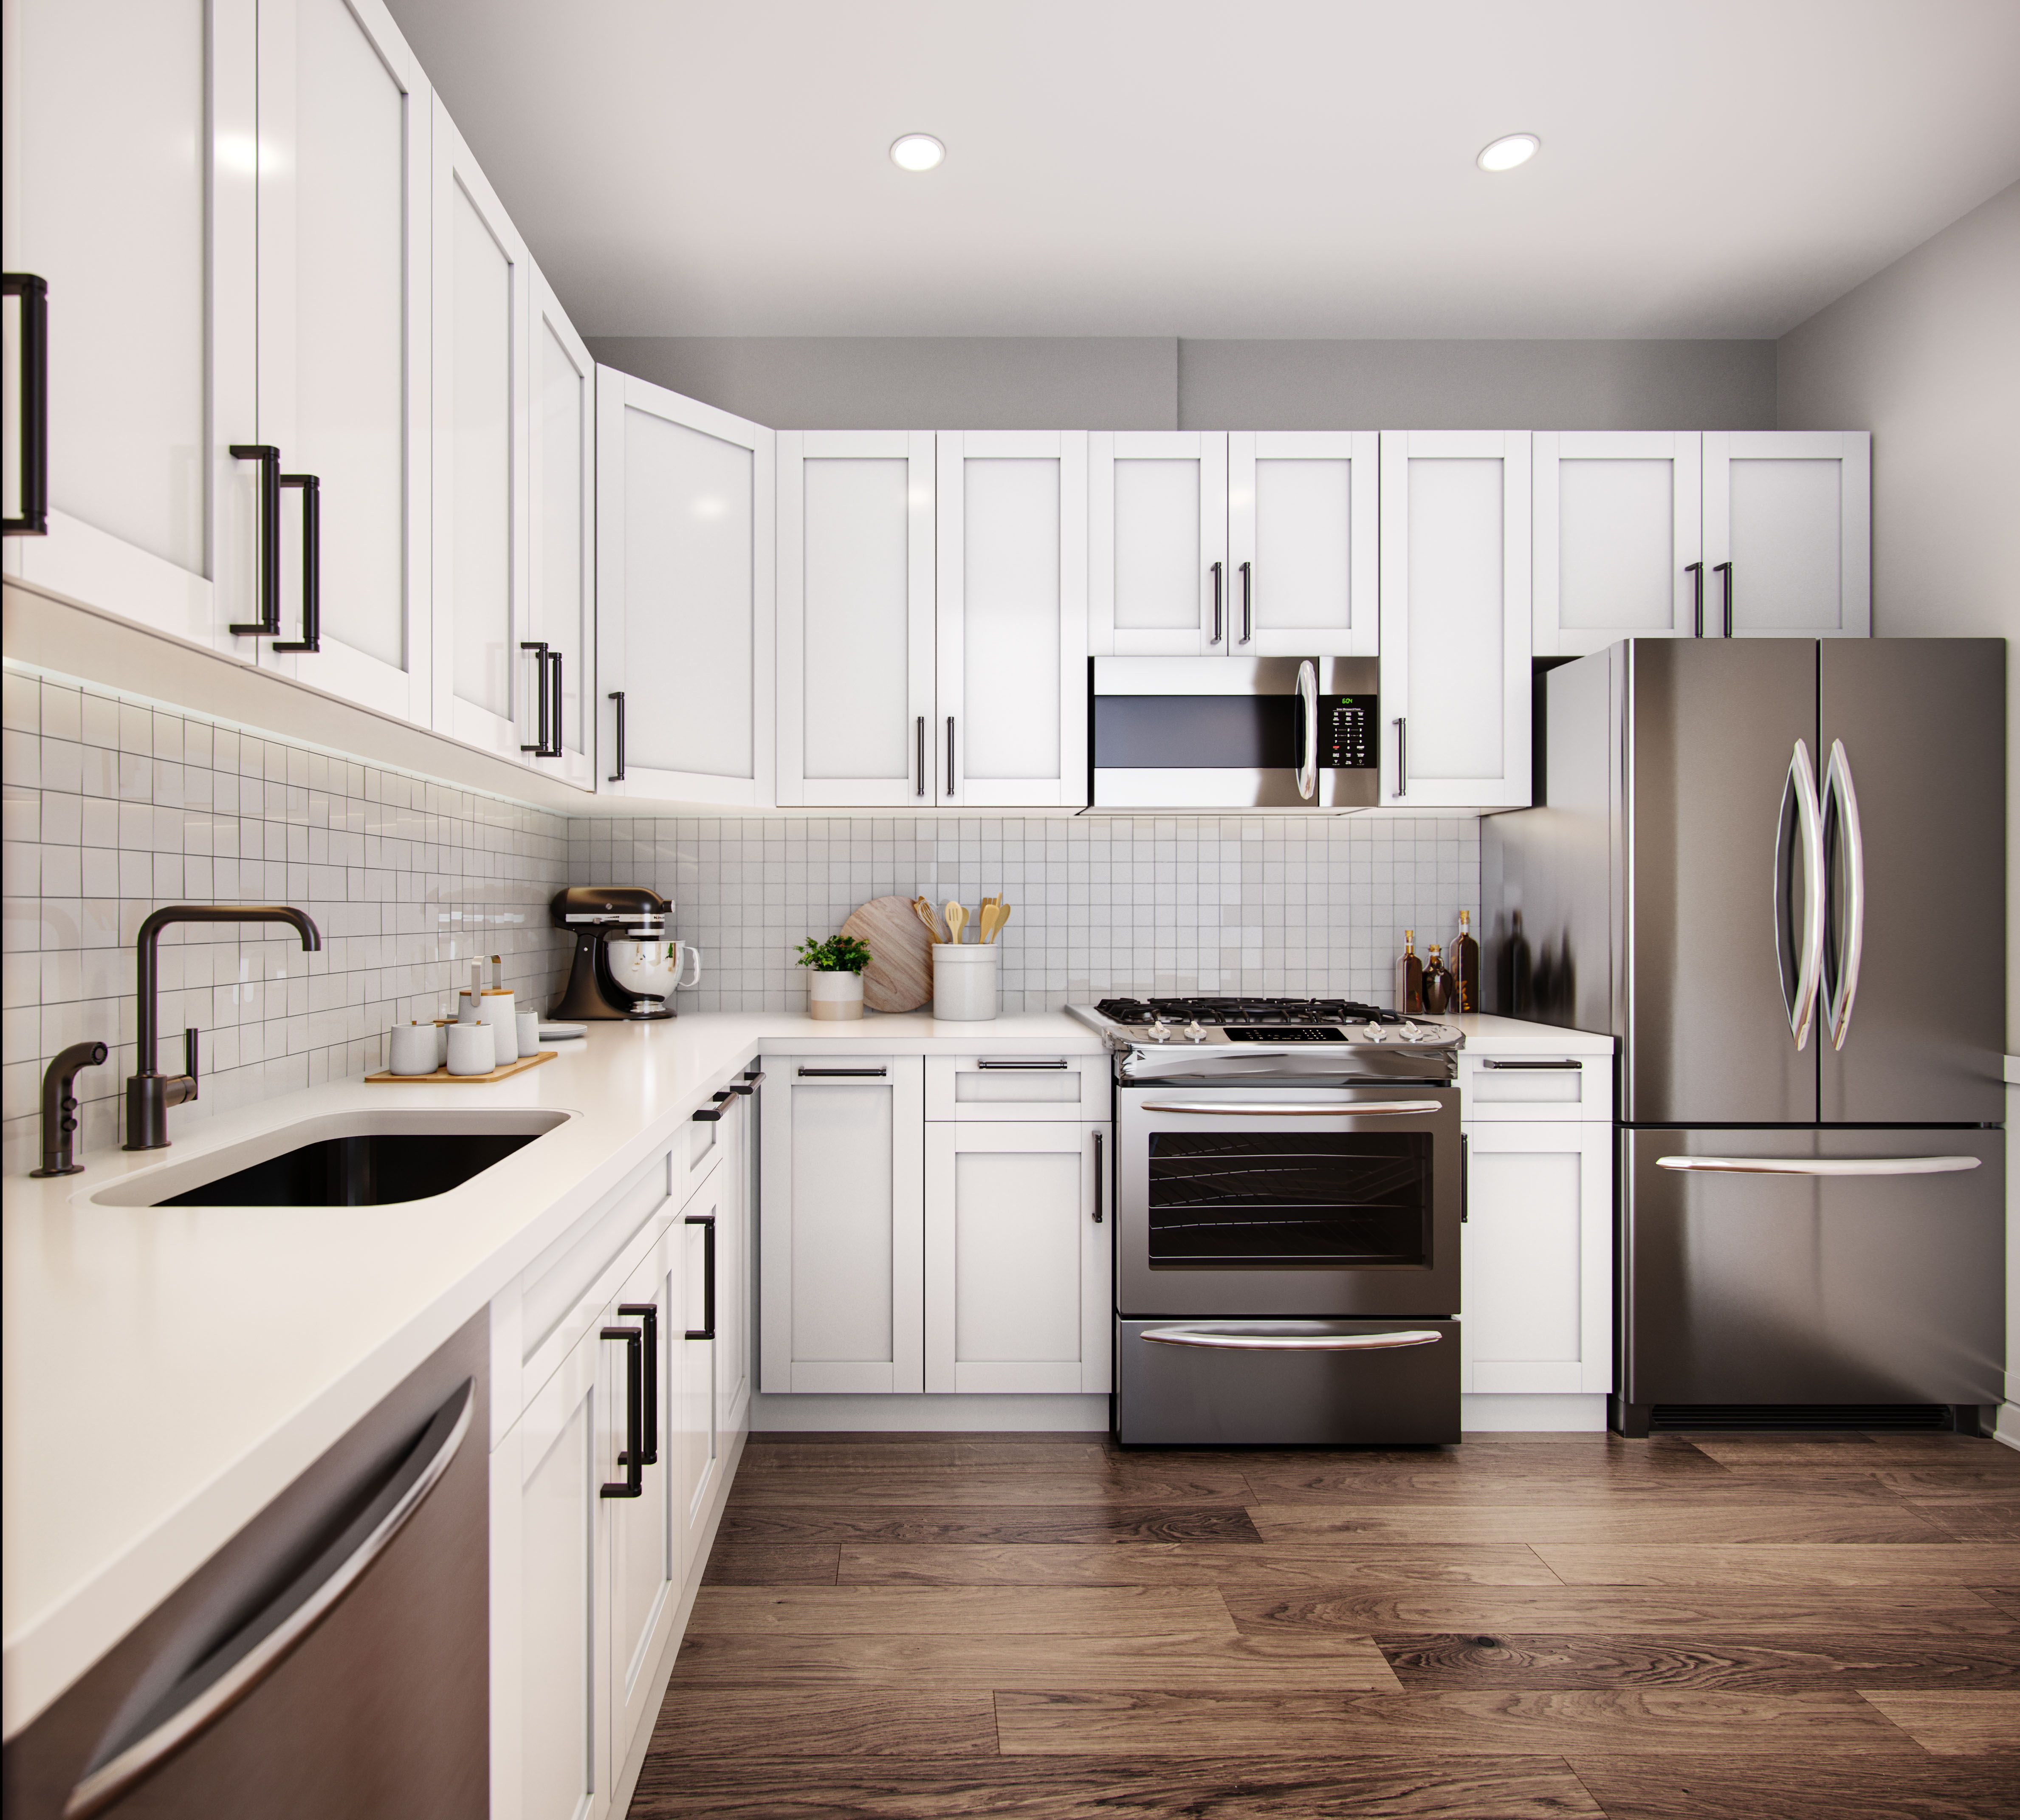 Kitchen featured in The Doncaster By Beechwood Homes in Nassau-Suffolk, NY